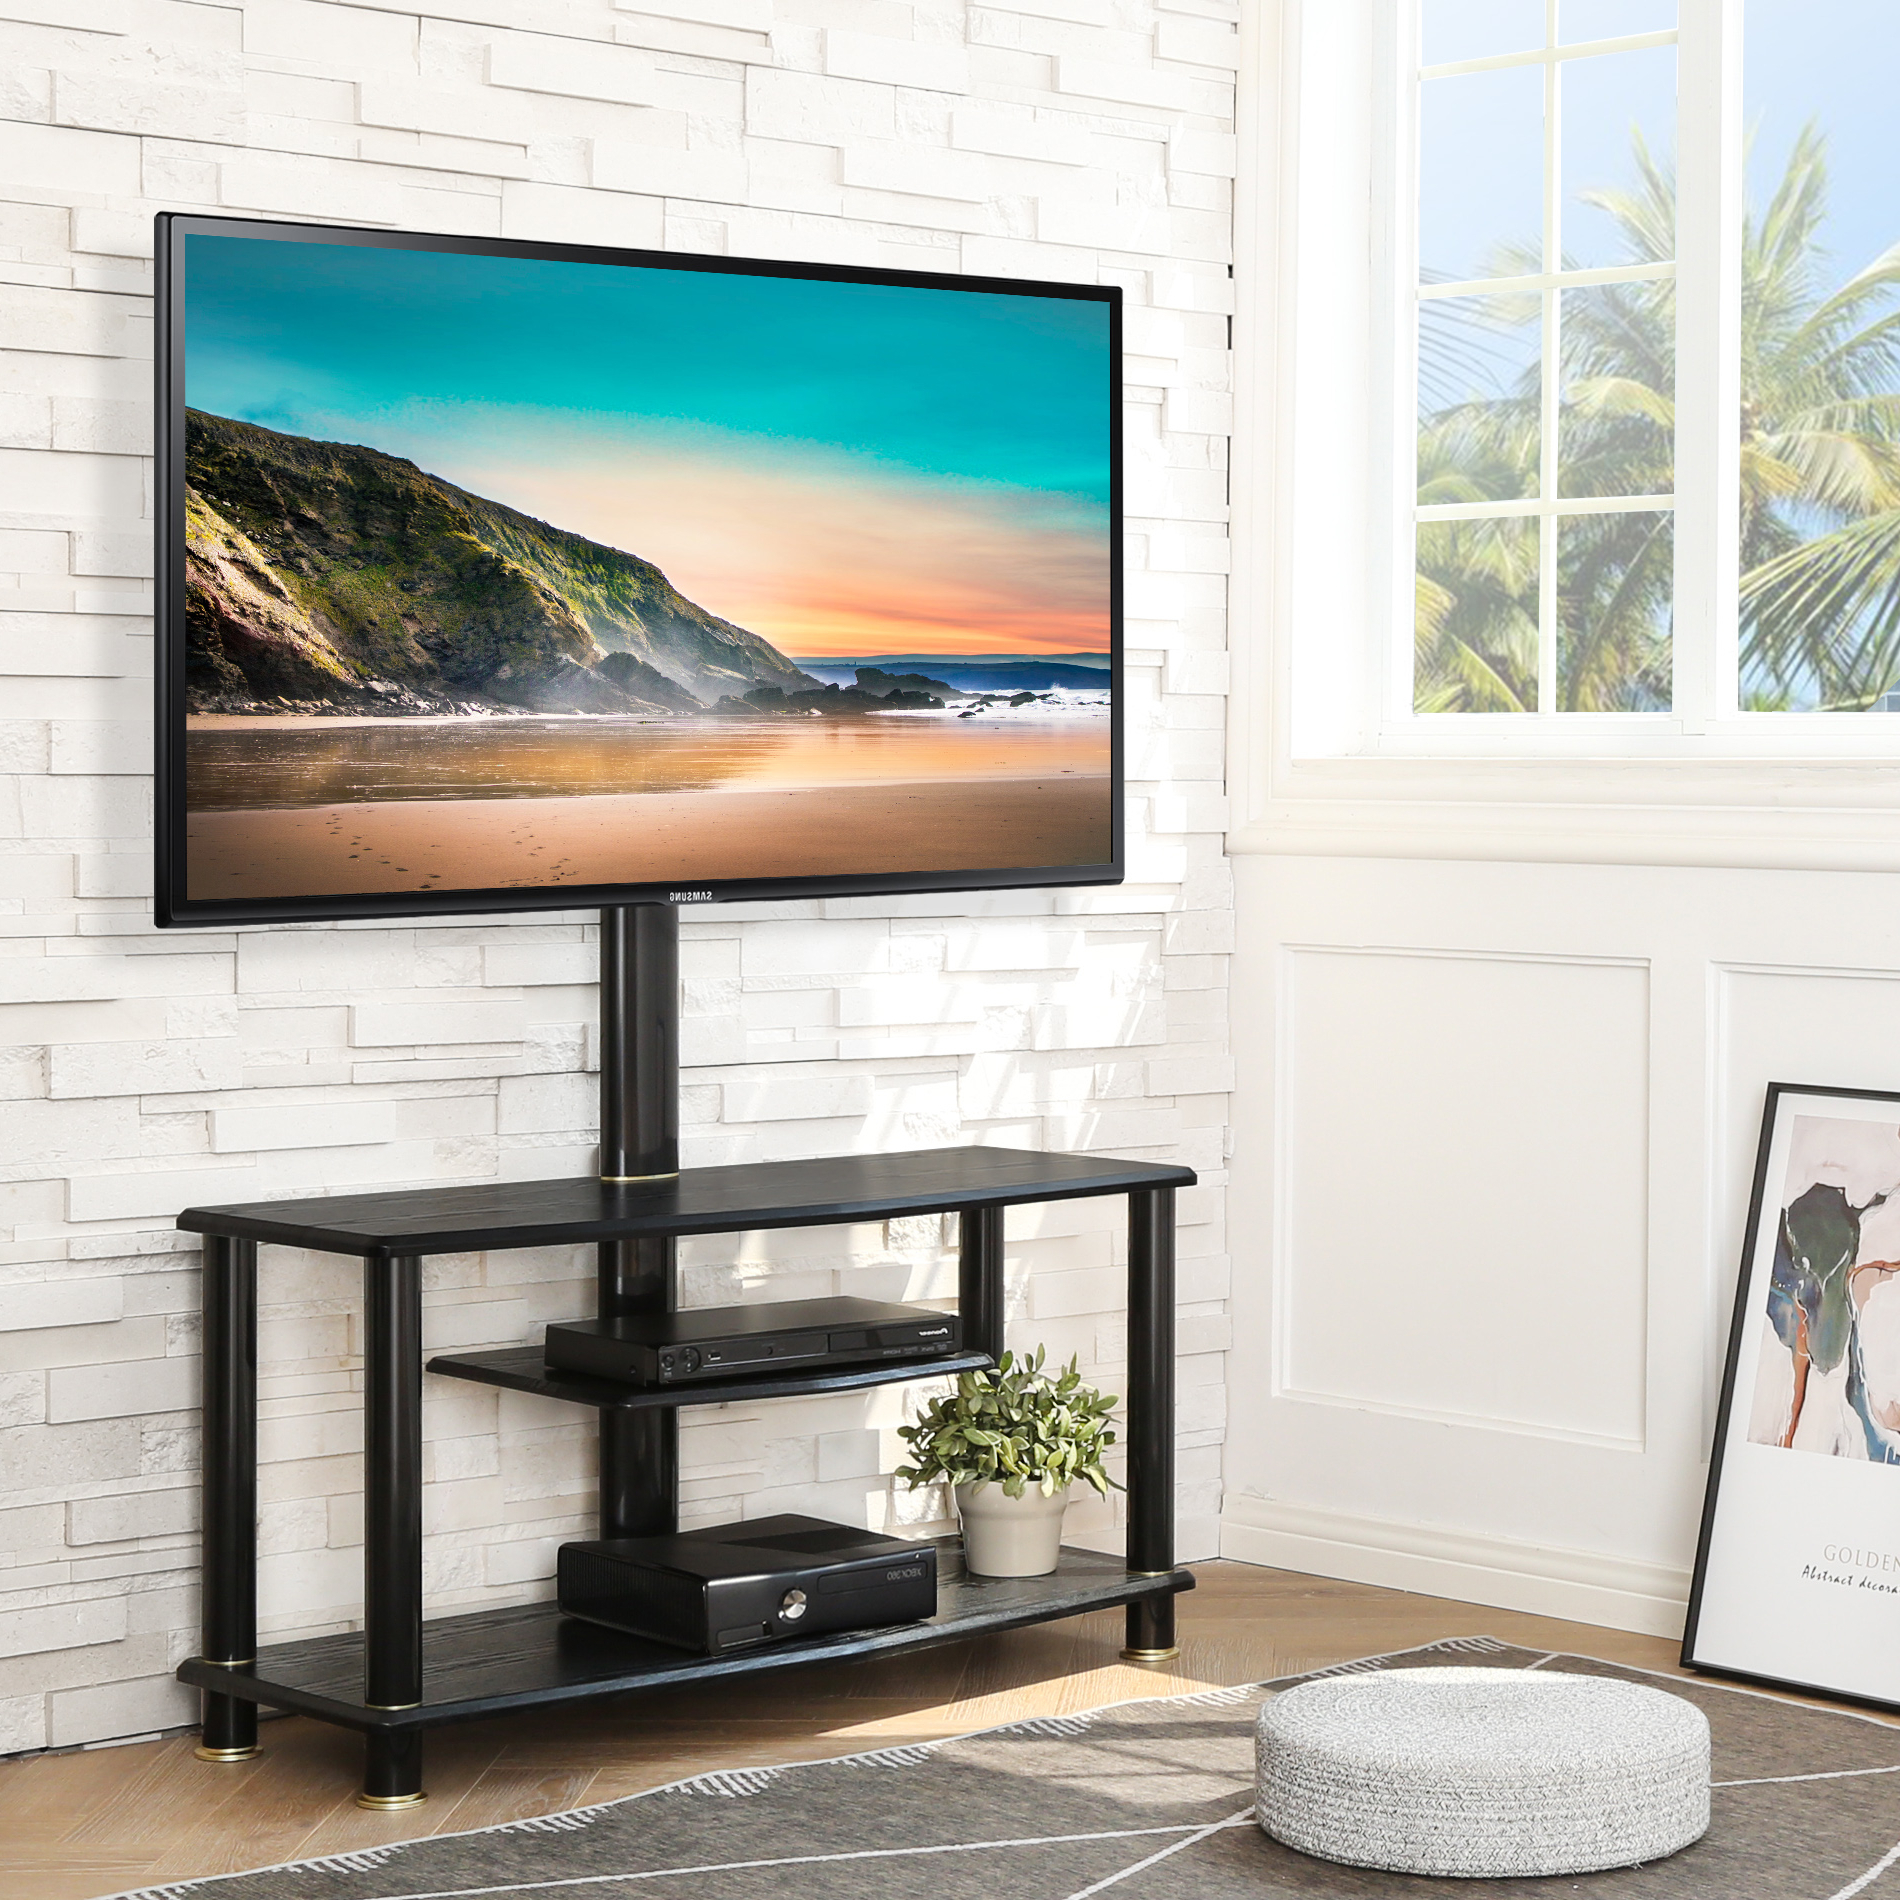 Fitueyes 2 In 1 Floor Tv Stand With Swivel Mount For 32 To In Swivel Floor Tv Stands Height Adjustable (View 8 of 20)